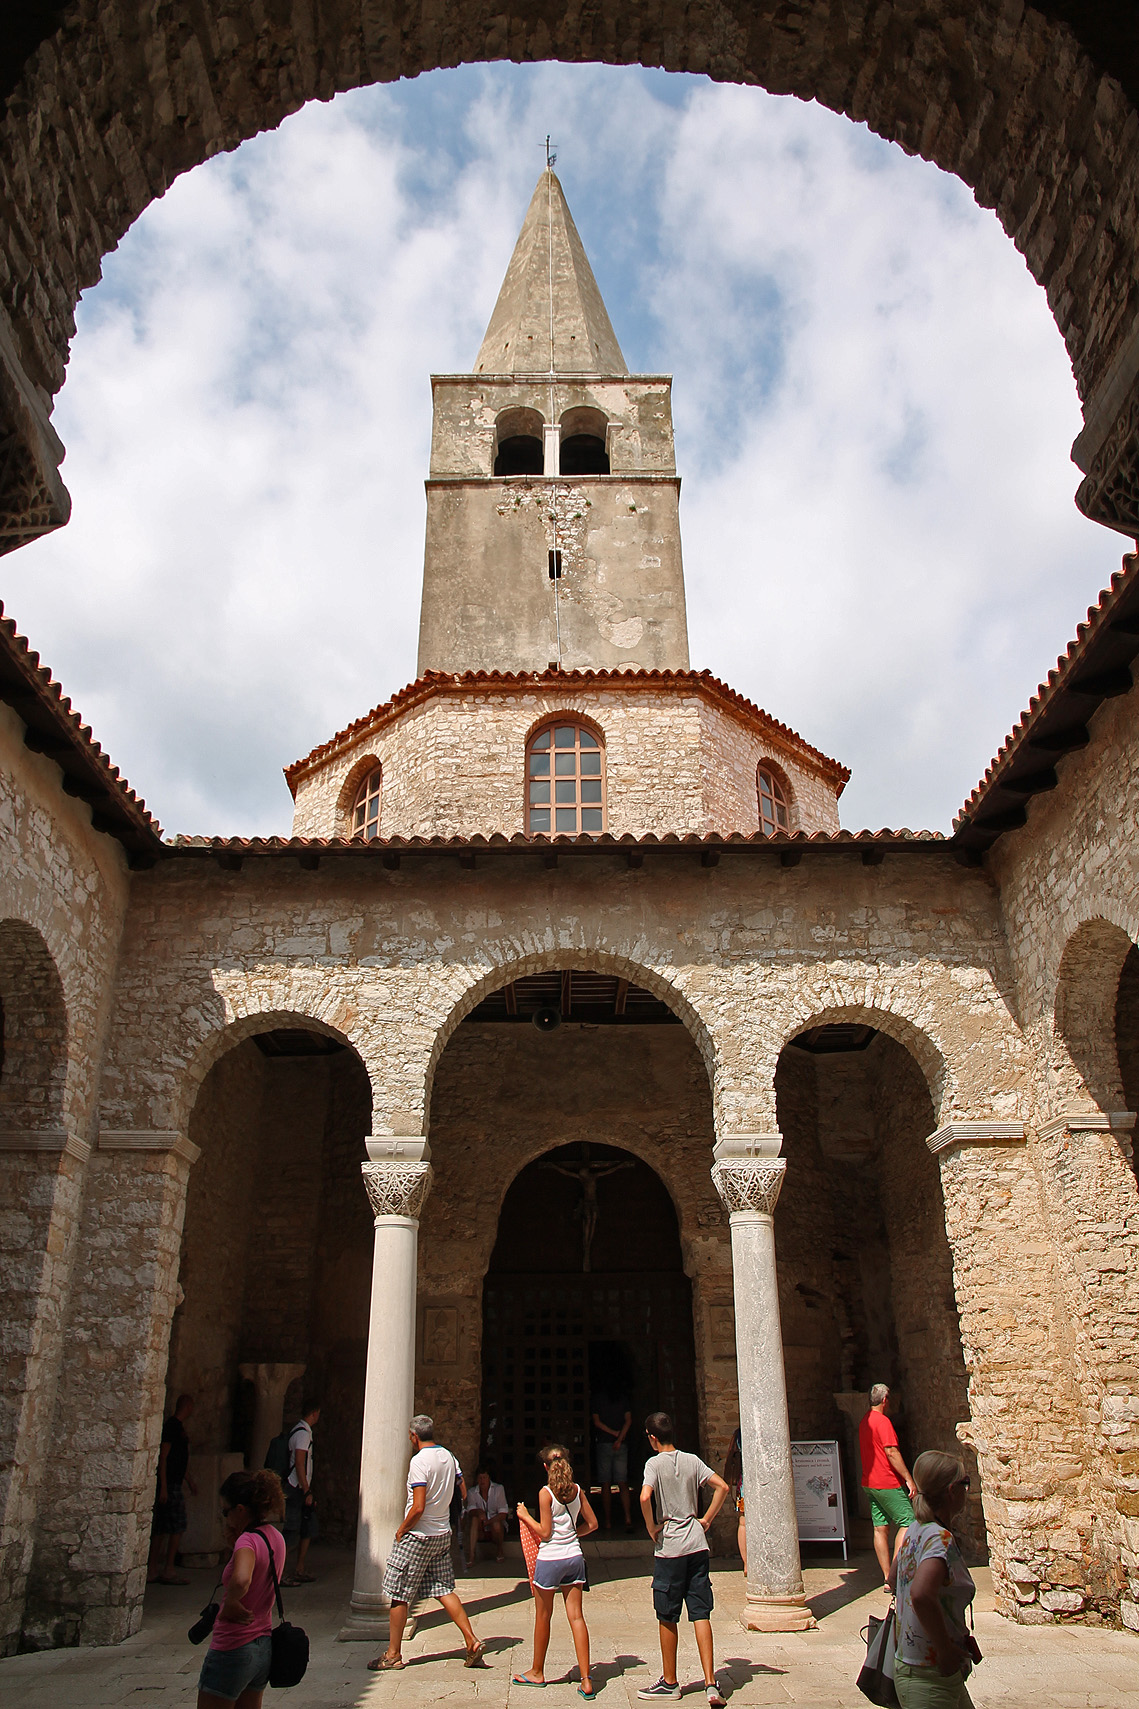 Atrium, baptistery and the bell tower: view from the cathedral's side.